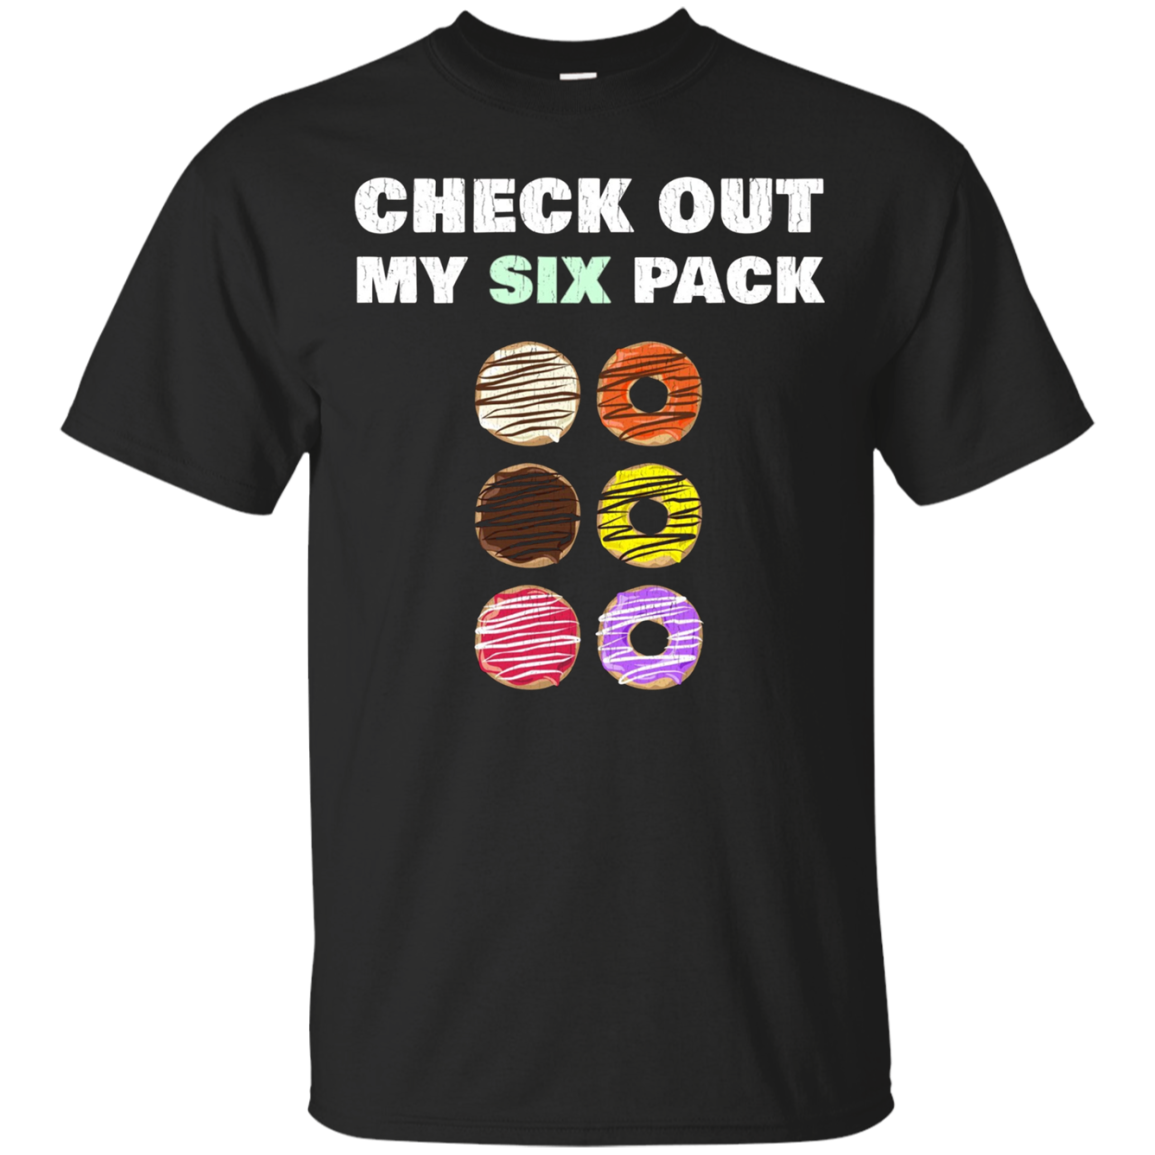 Check Out My Six Pack Funny Donut T-Shirt for Gym Workout